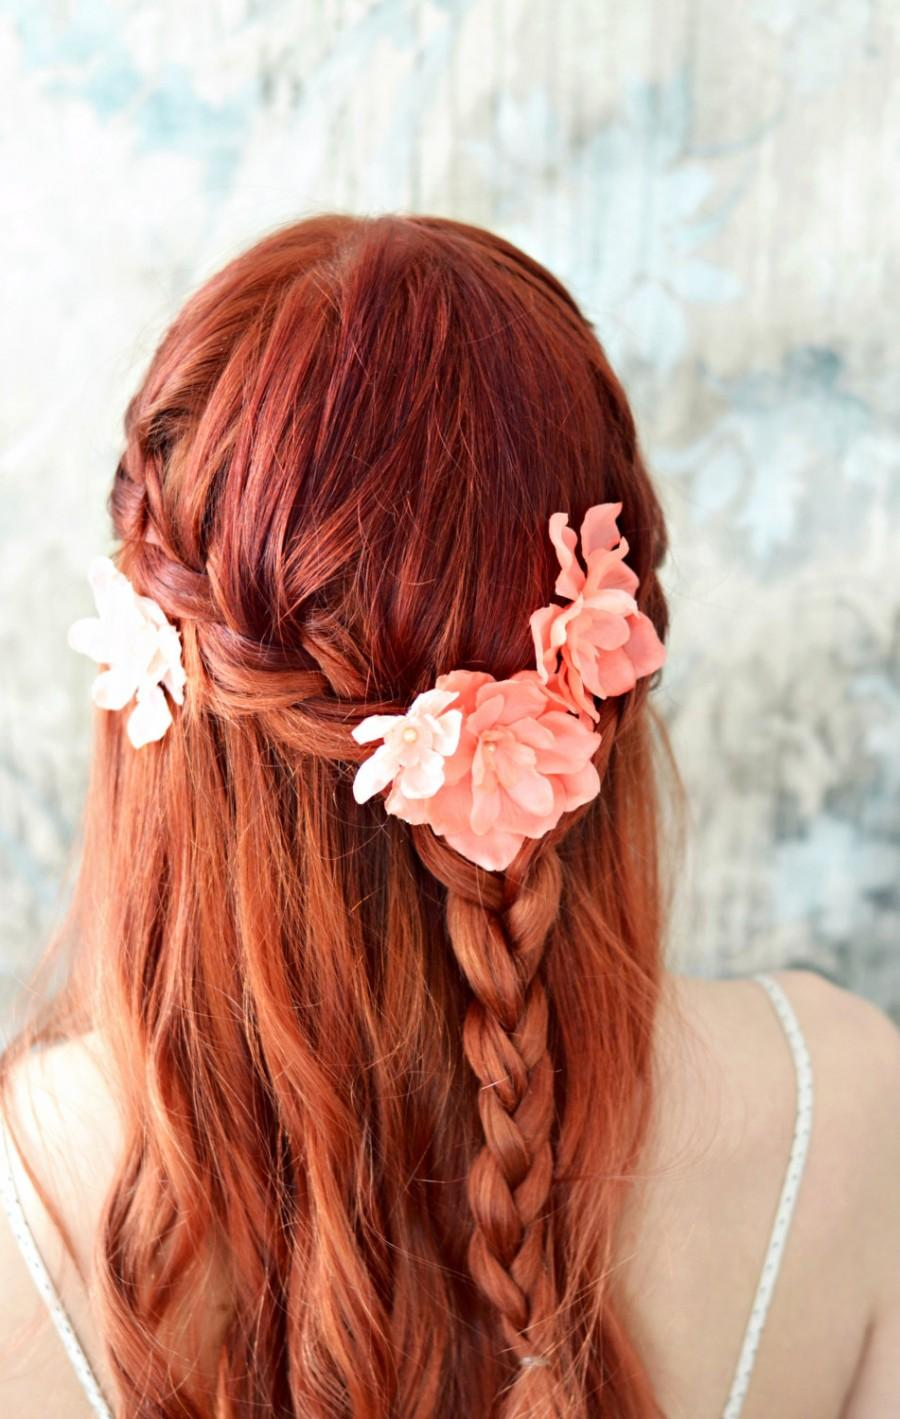 Bridal Flower Clips Salmon Pink Floral Pins Flower Hair Pins